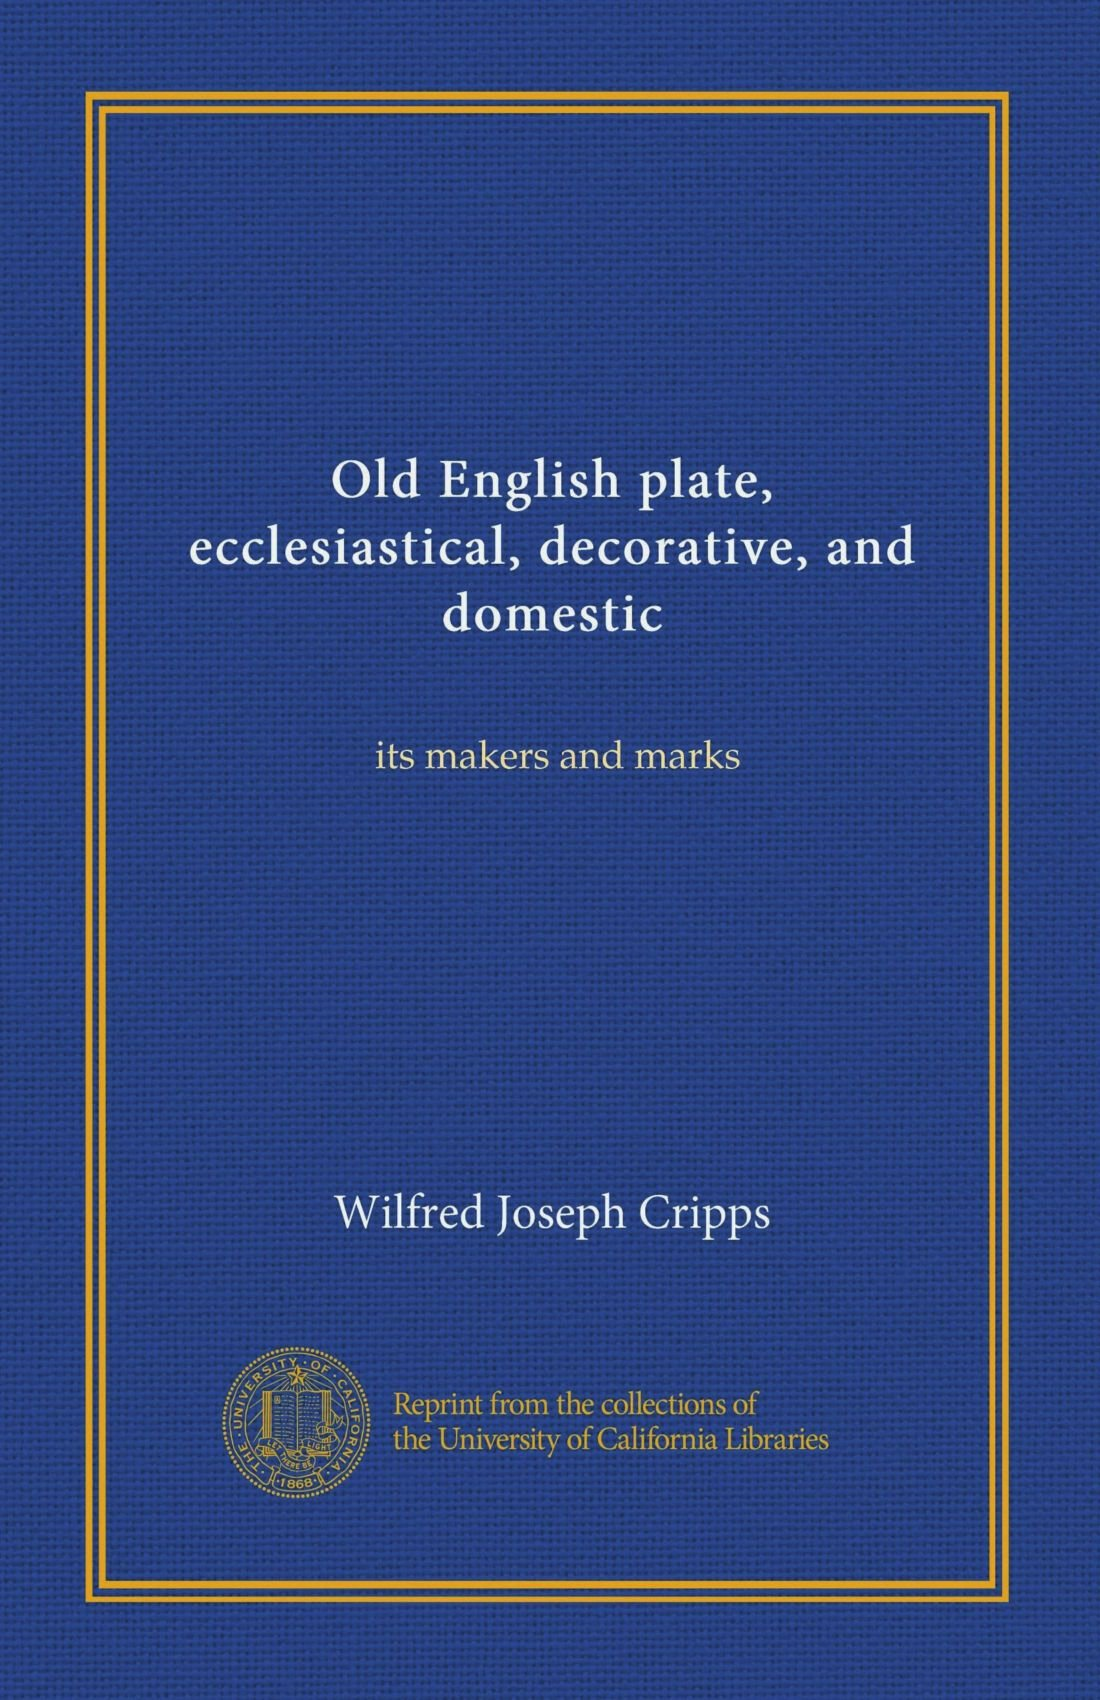 Old English plate, ecclesiastical, decorative, and domestic: its makers and marks PDF